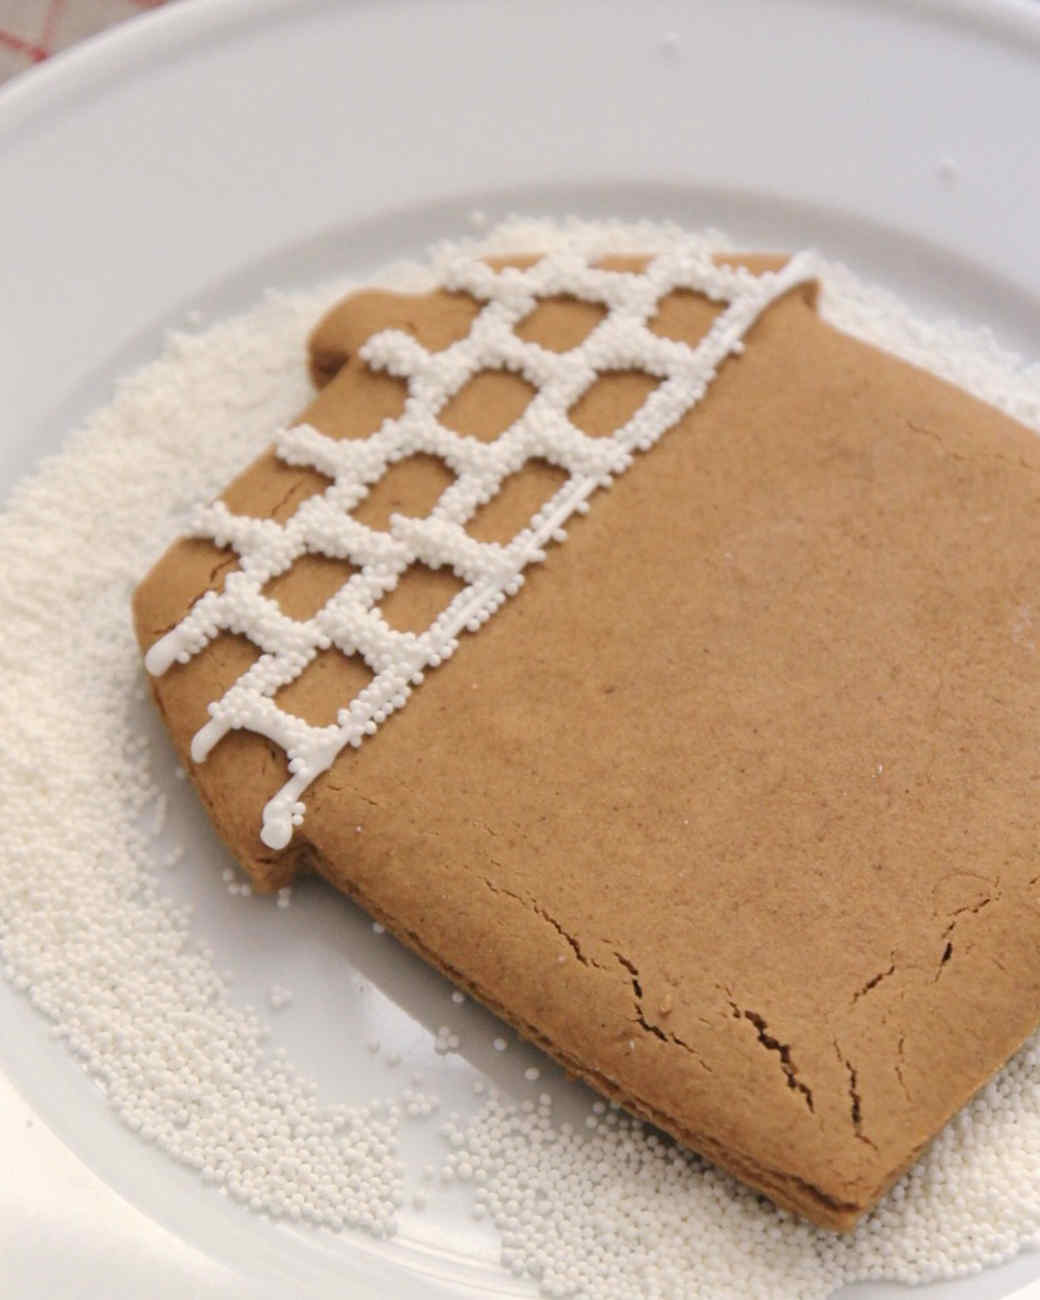 gingerbread-snow-covered-jennysteffens-1115.jpg